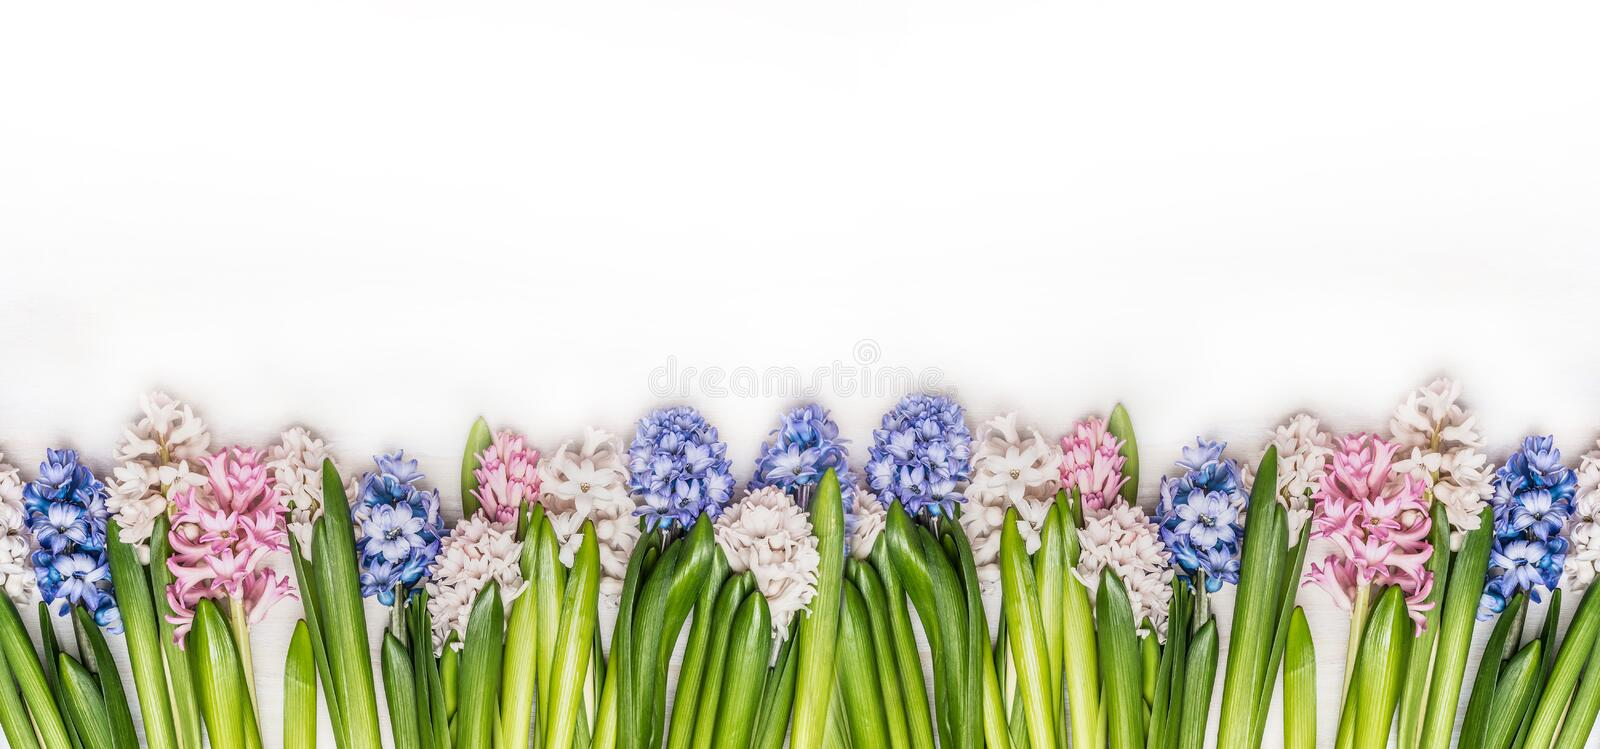 Spring flowers panorama with fresh colorful Hyacinths on white wooden background, top view. royalty free stock photography